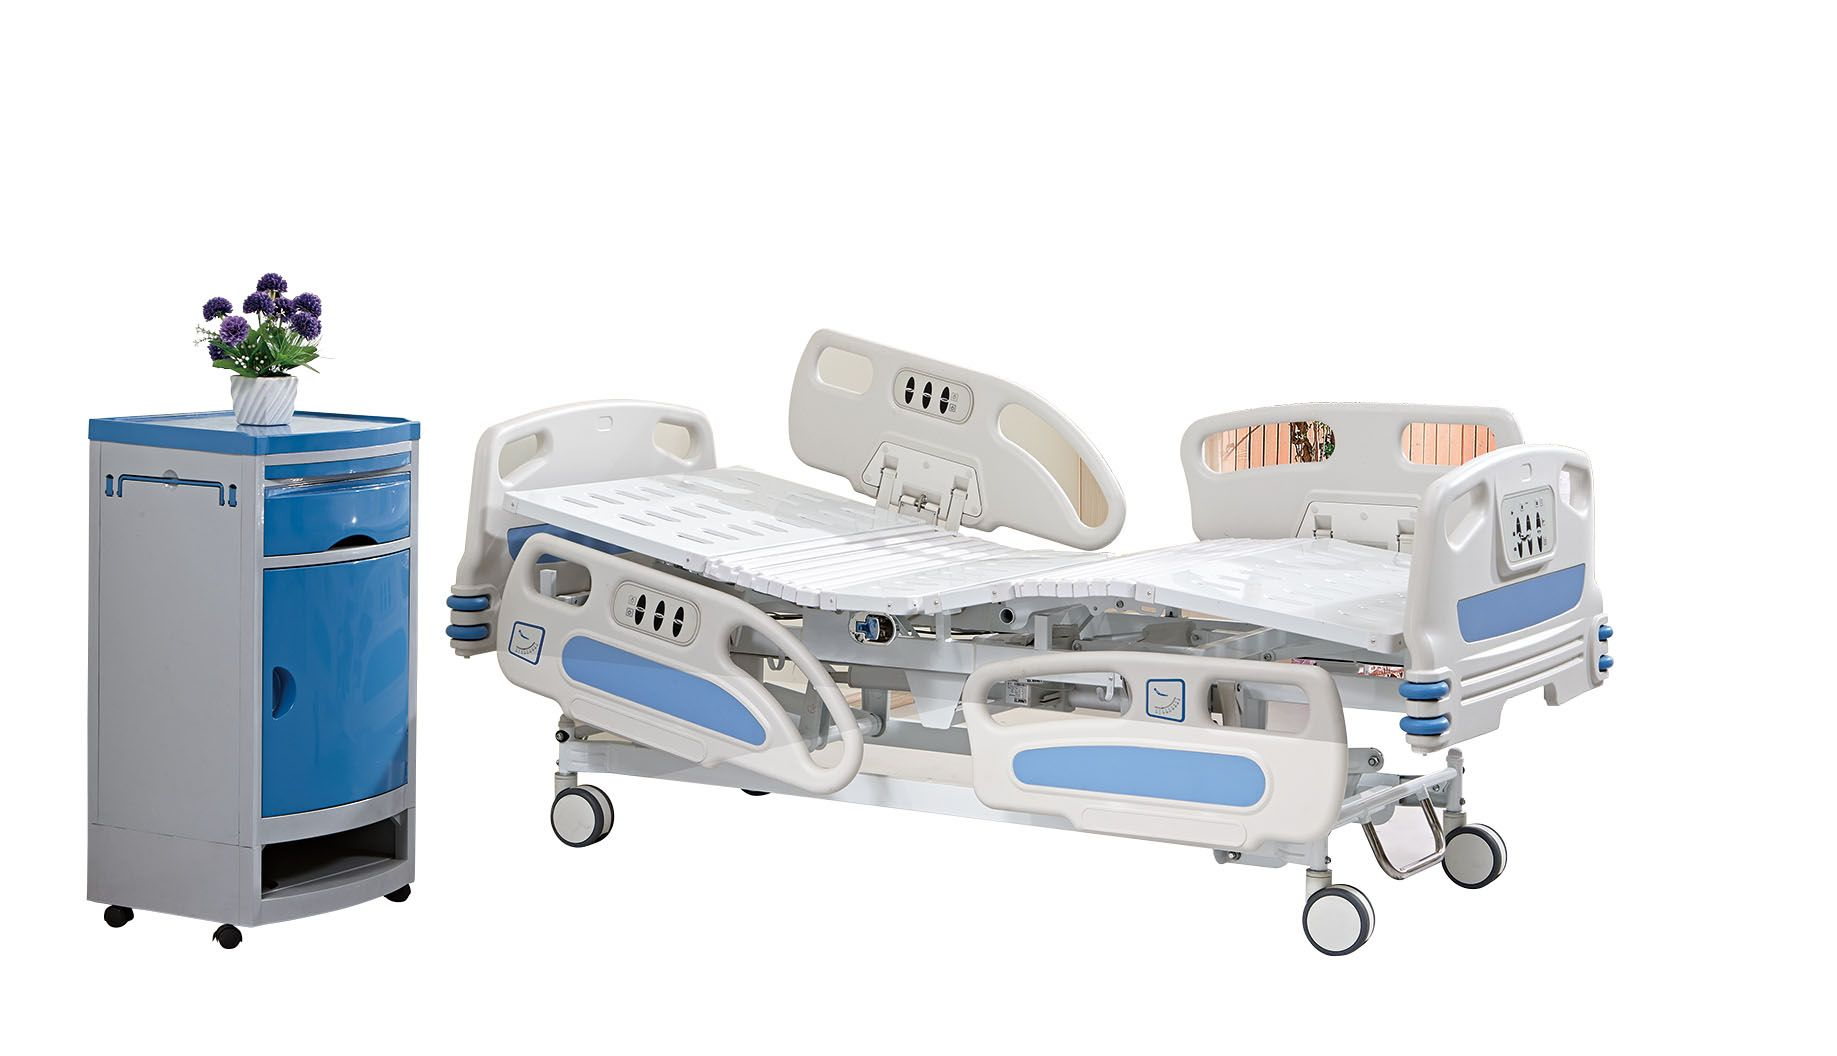 Three functions electric hospital beds for sale. 1. 5